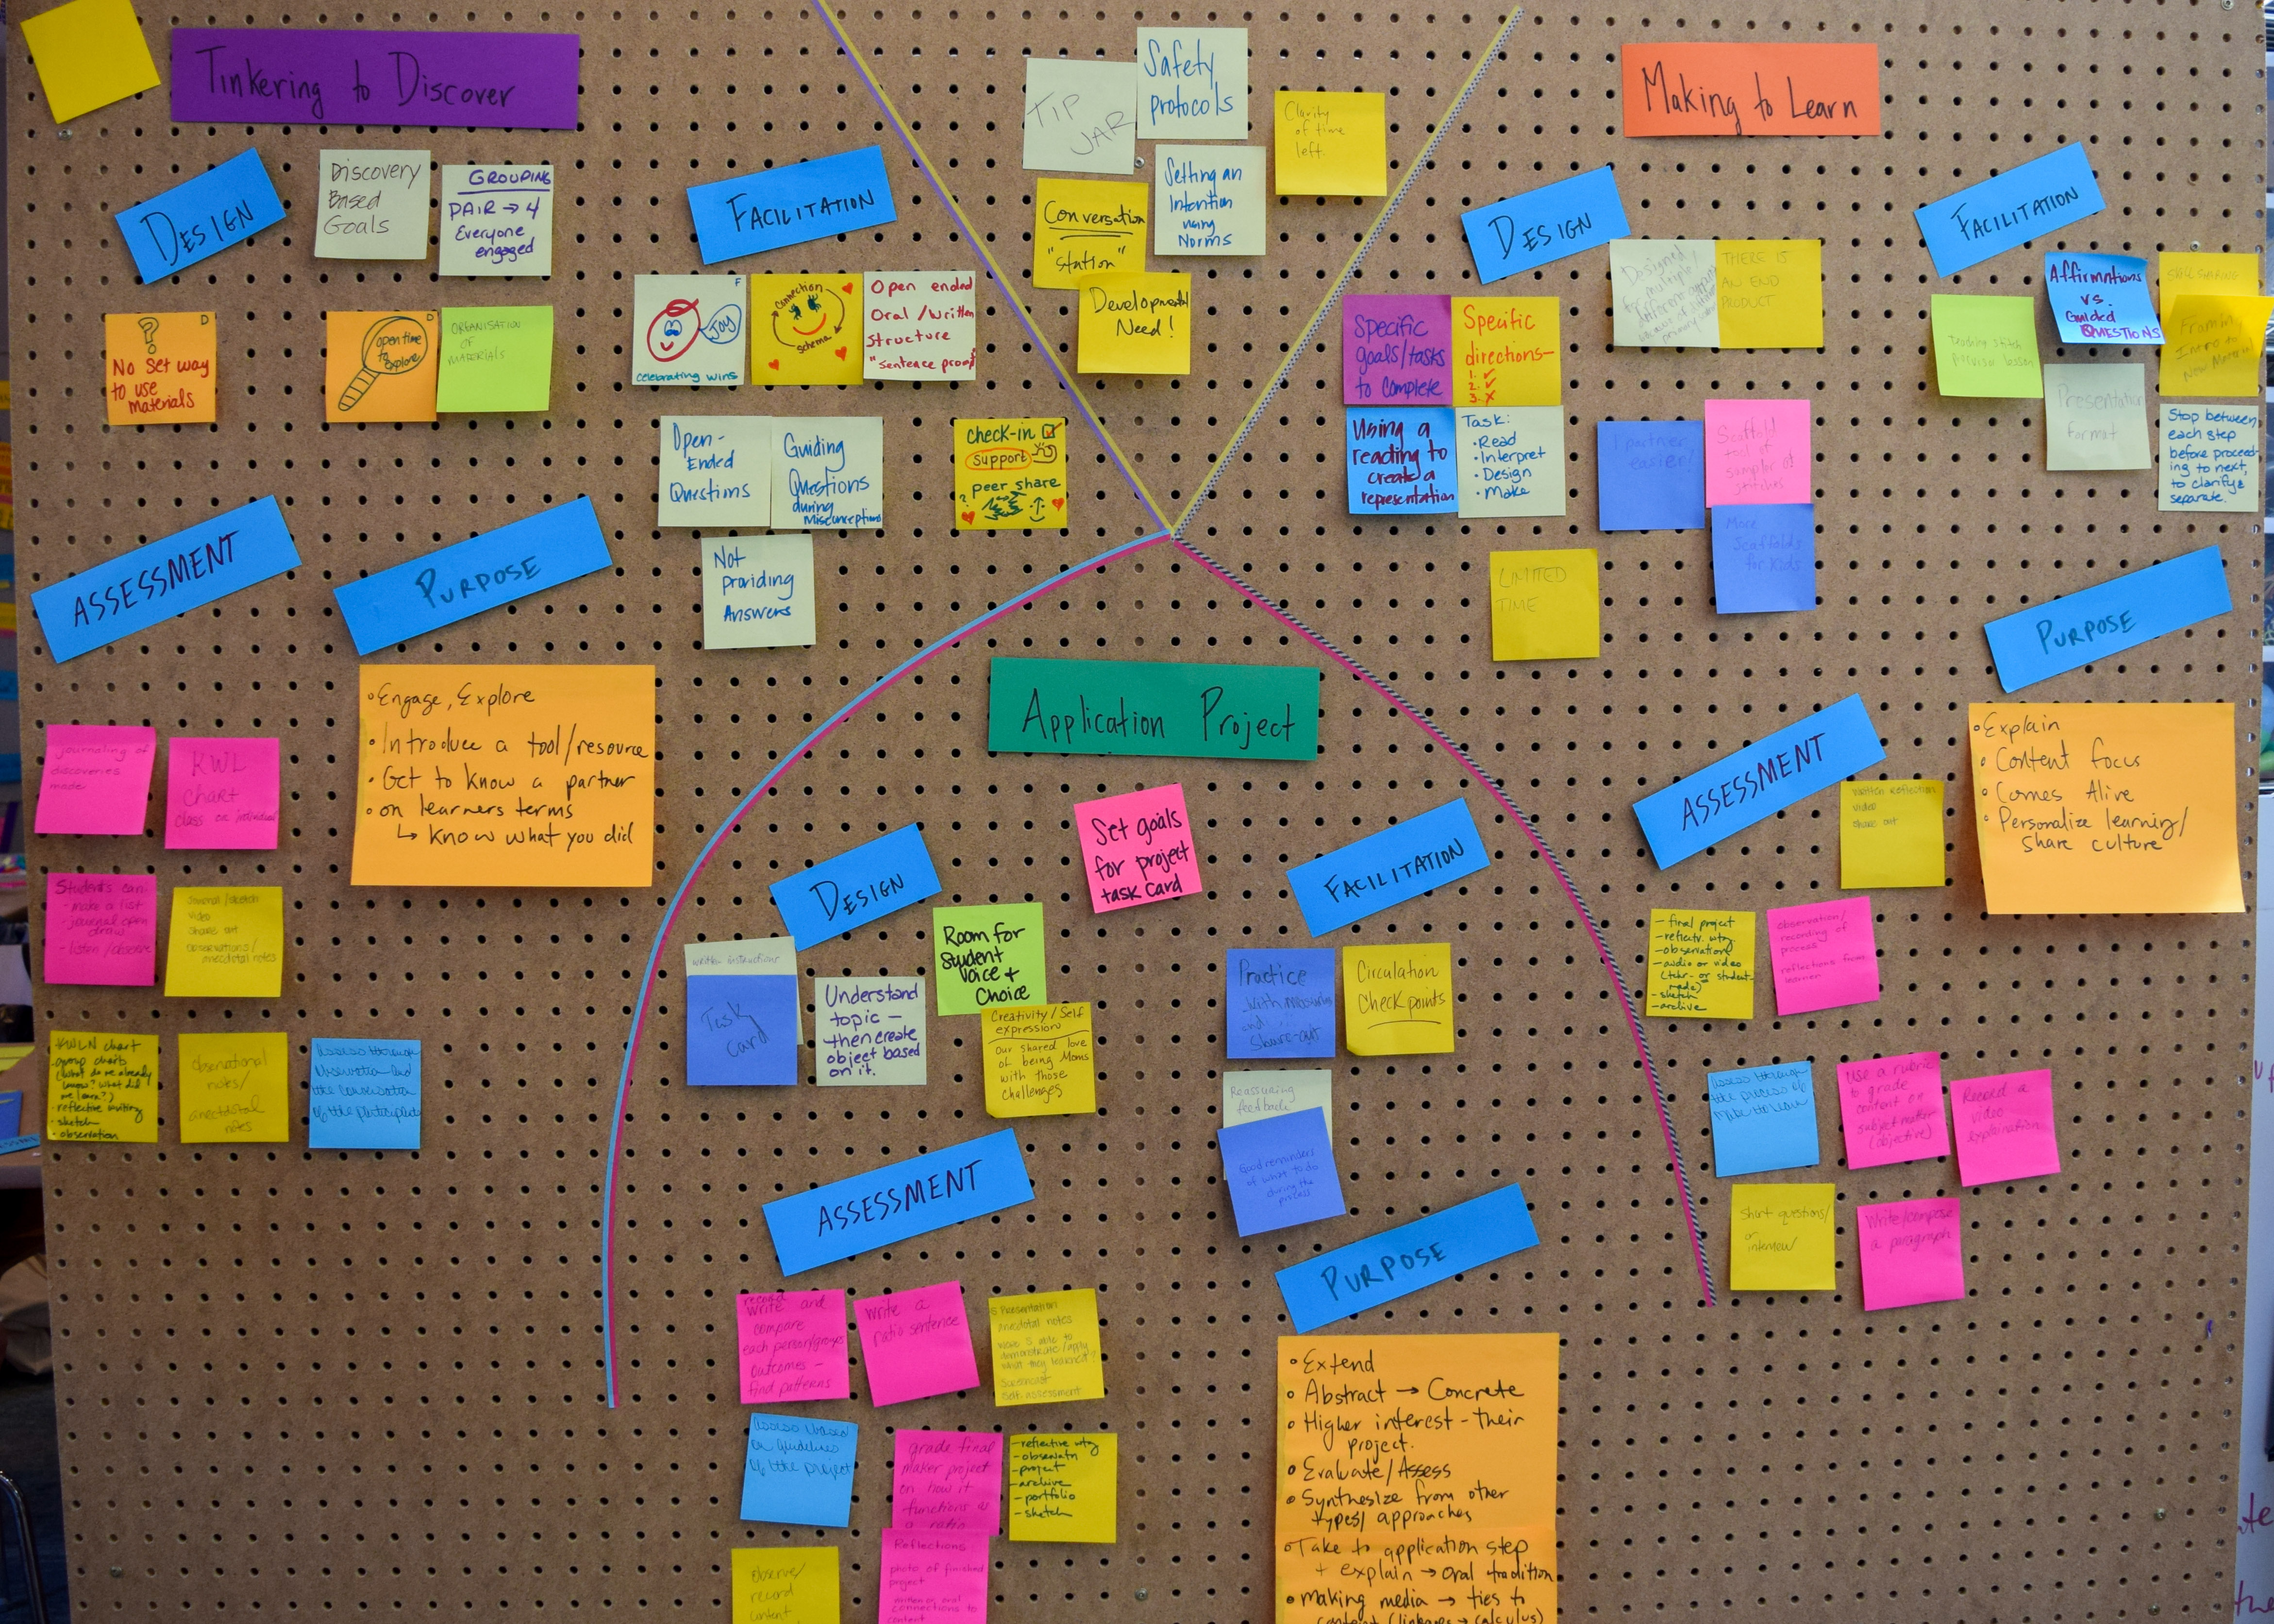 Many colorful post-it notes on a pegboard show attendee observations of three learning approaches: Tinkering to Discover, Making to Learn, and the Application Project